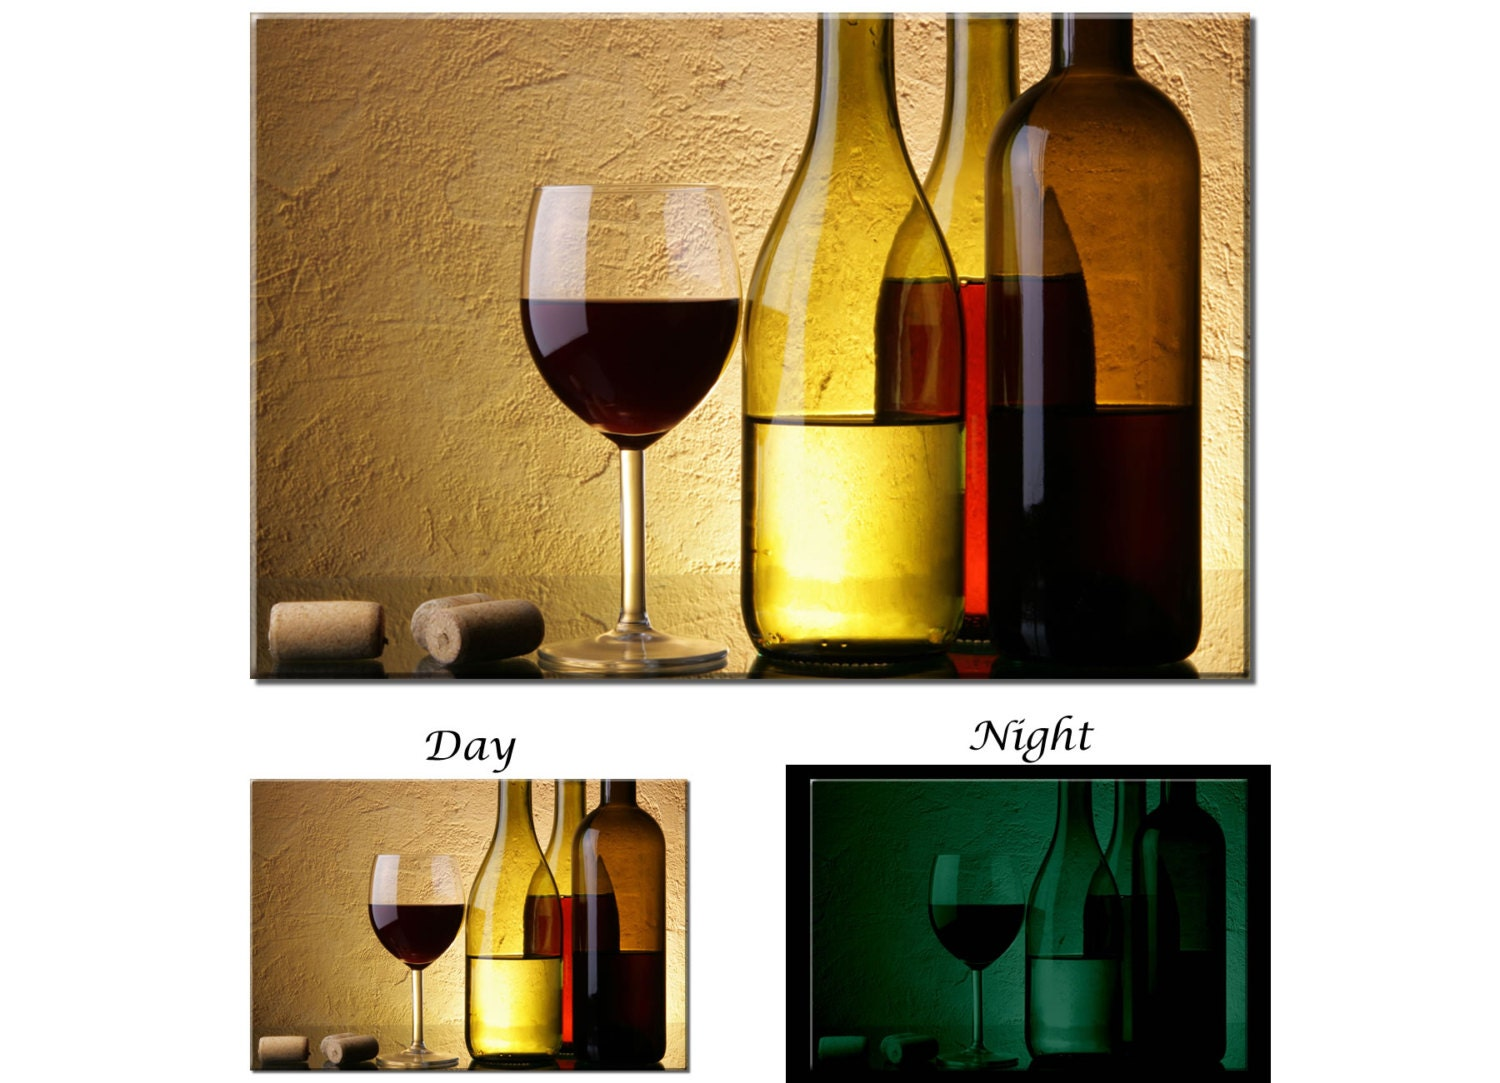 Famous Wine Bottle Holder Wall Decor Image - The Wall Art ...